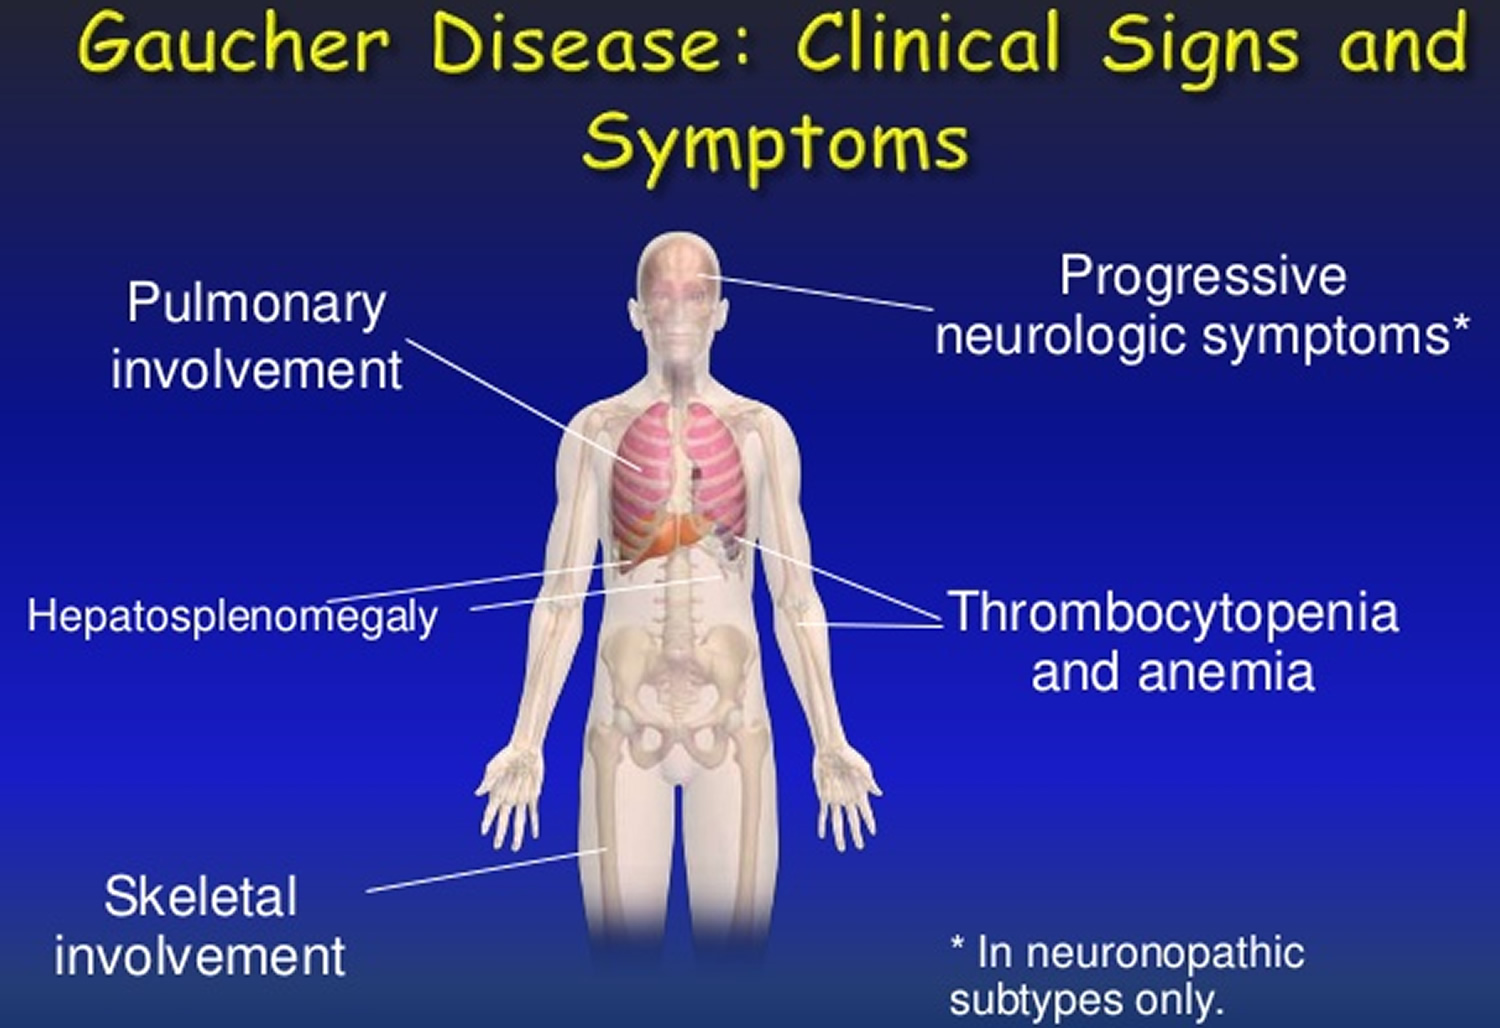 Gaucher Disease - Causes, Types, Symptoms, Treatment